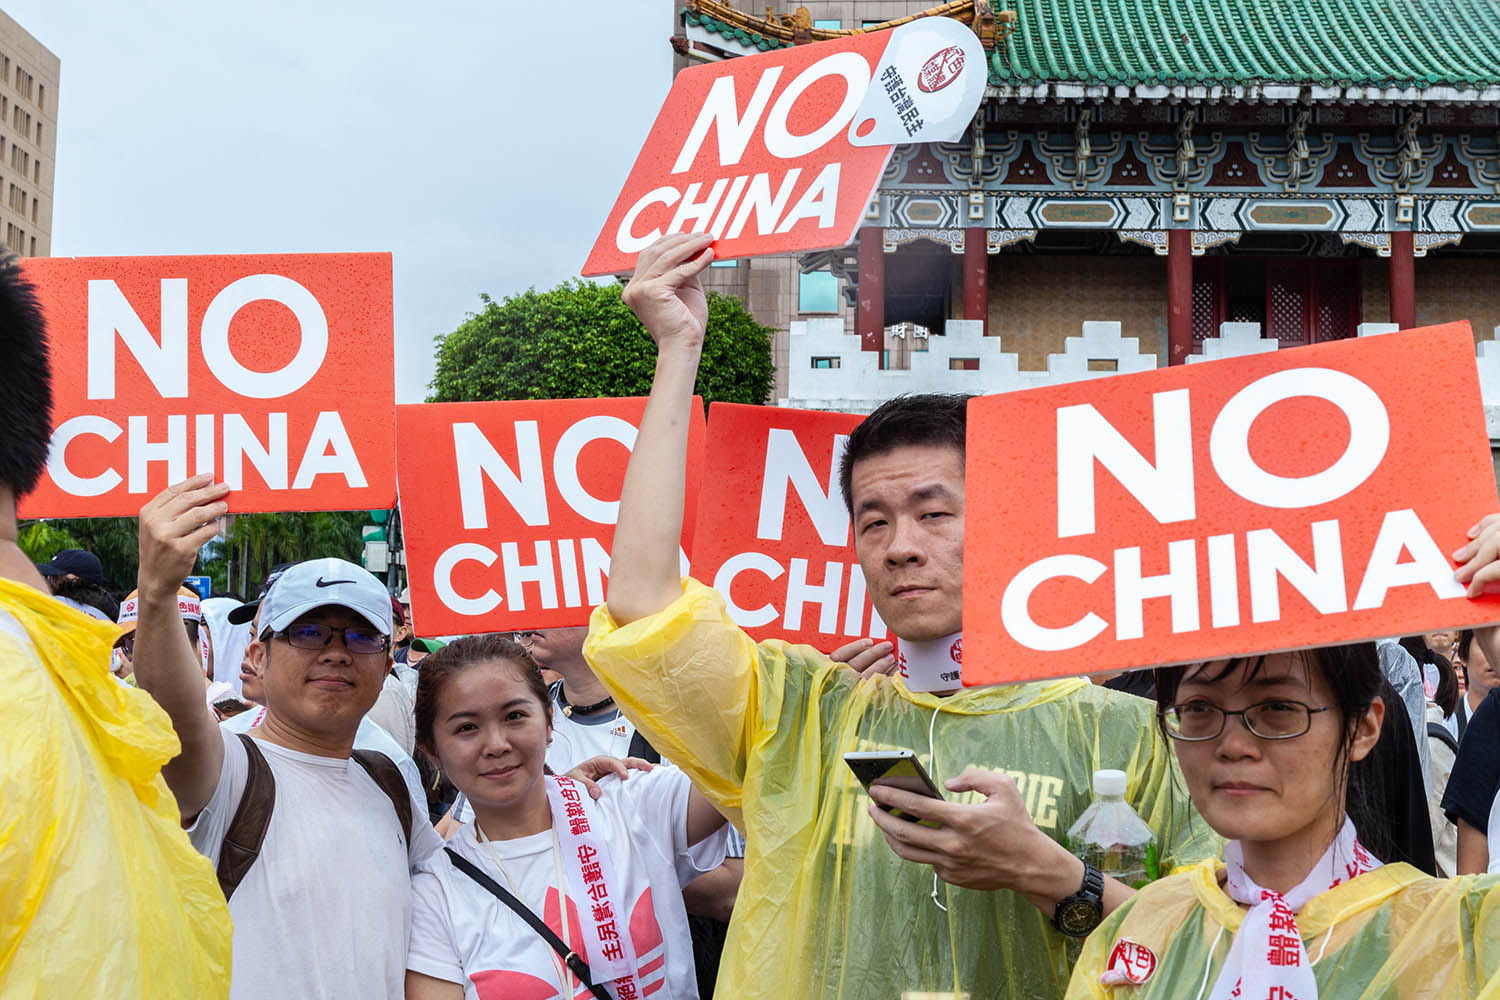 Protesters in Taipei hold signs stating their opposition to Chinese media disinformation and the Chinese Communist Party's authoritarian rule in China on June 23, 2019.